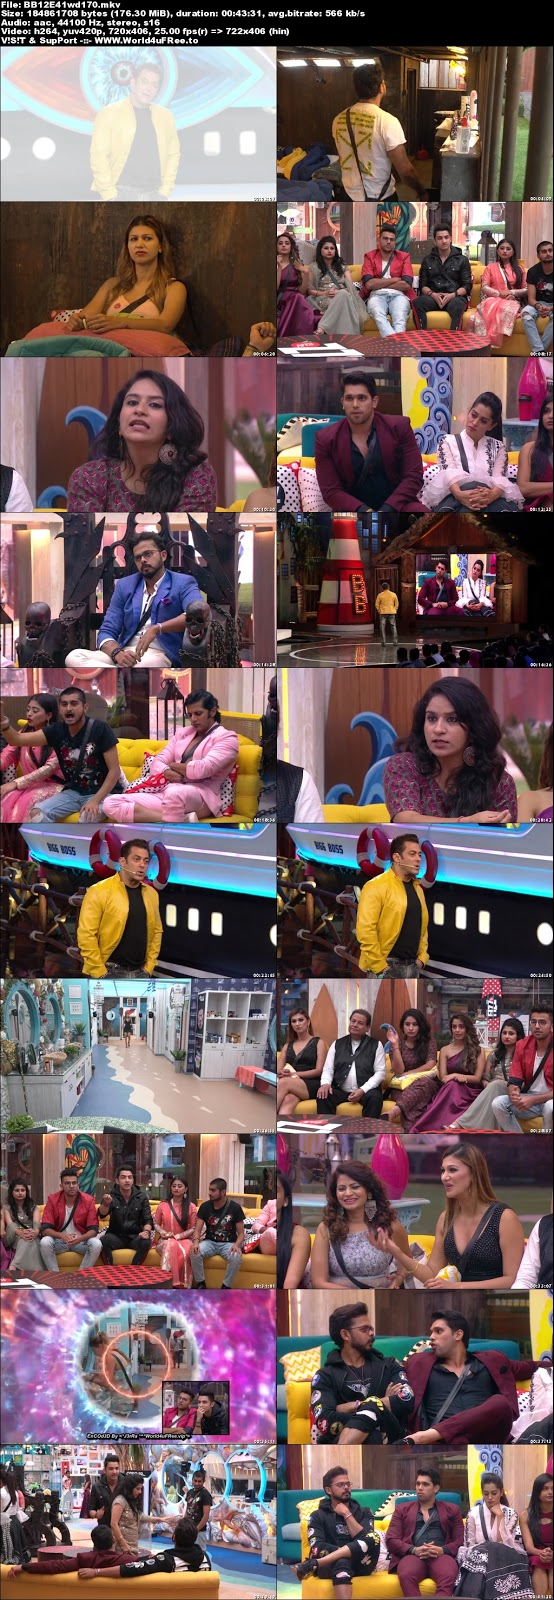 Bigg Boss 12 Episode 41 27 October 2018 WEBRip 480p 170Mb x264 world4ufree.fun tv show Episode 41 27 October 2018 world4ufree.fun 200mb 250mb 300mb compressed small size free download or watch online at world4ufree.fun